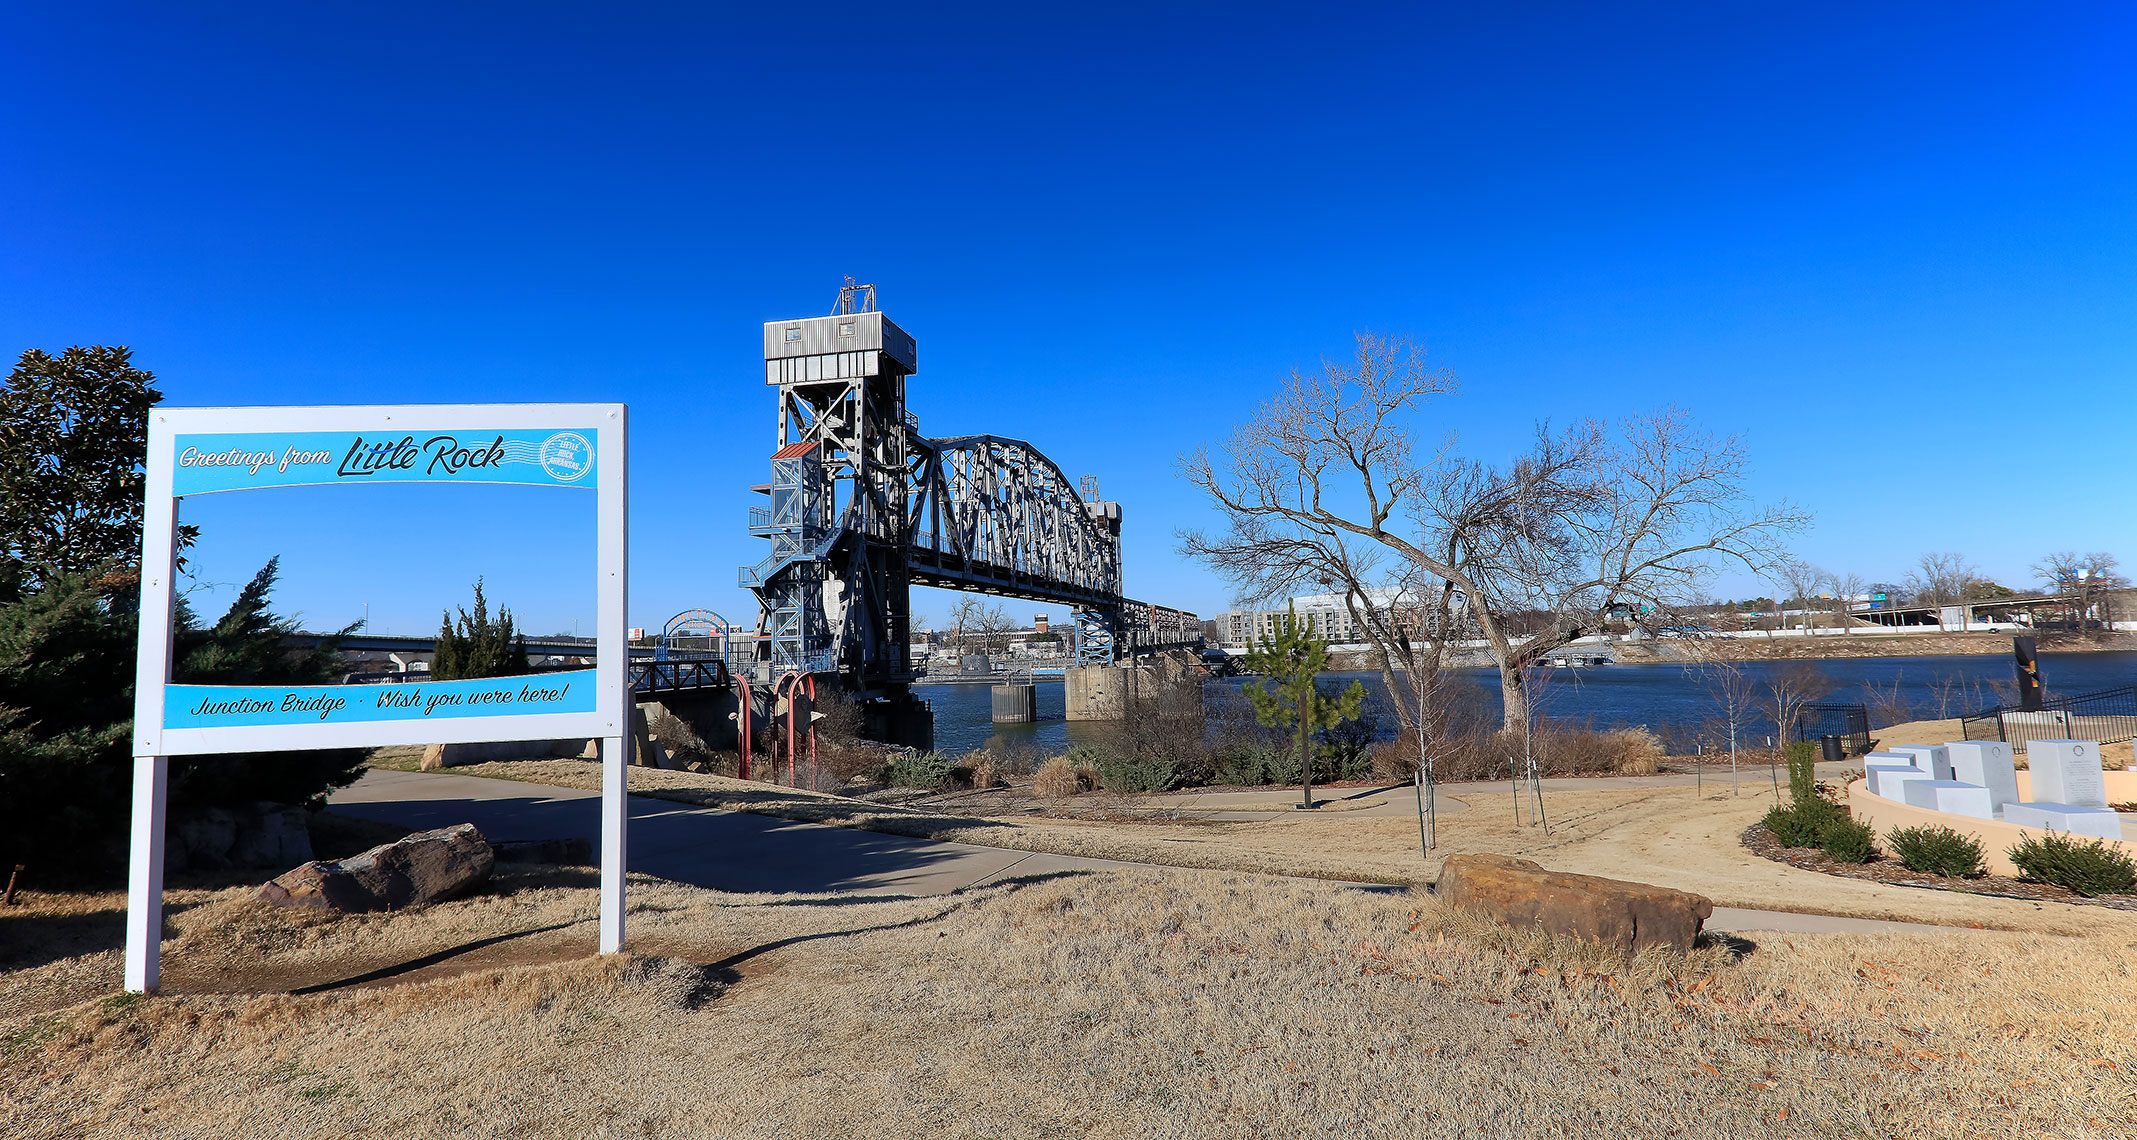 Landscape view of the Arkansas River and industrial structures in Little Rock, Arkansas